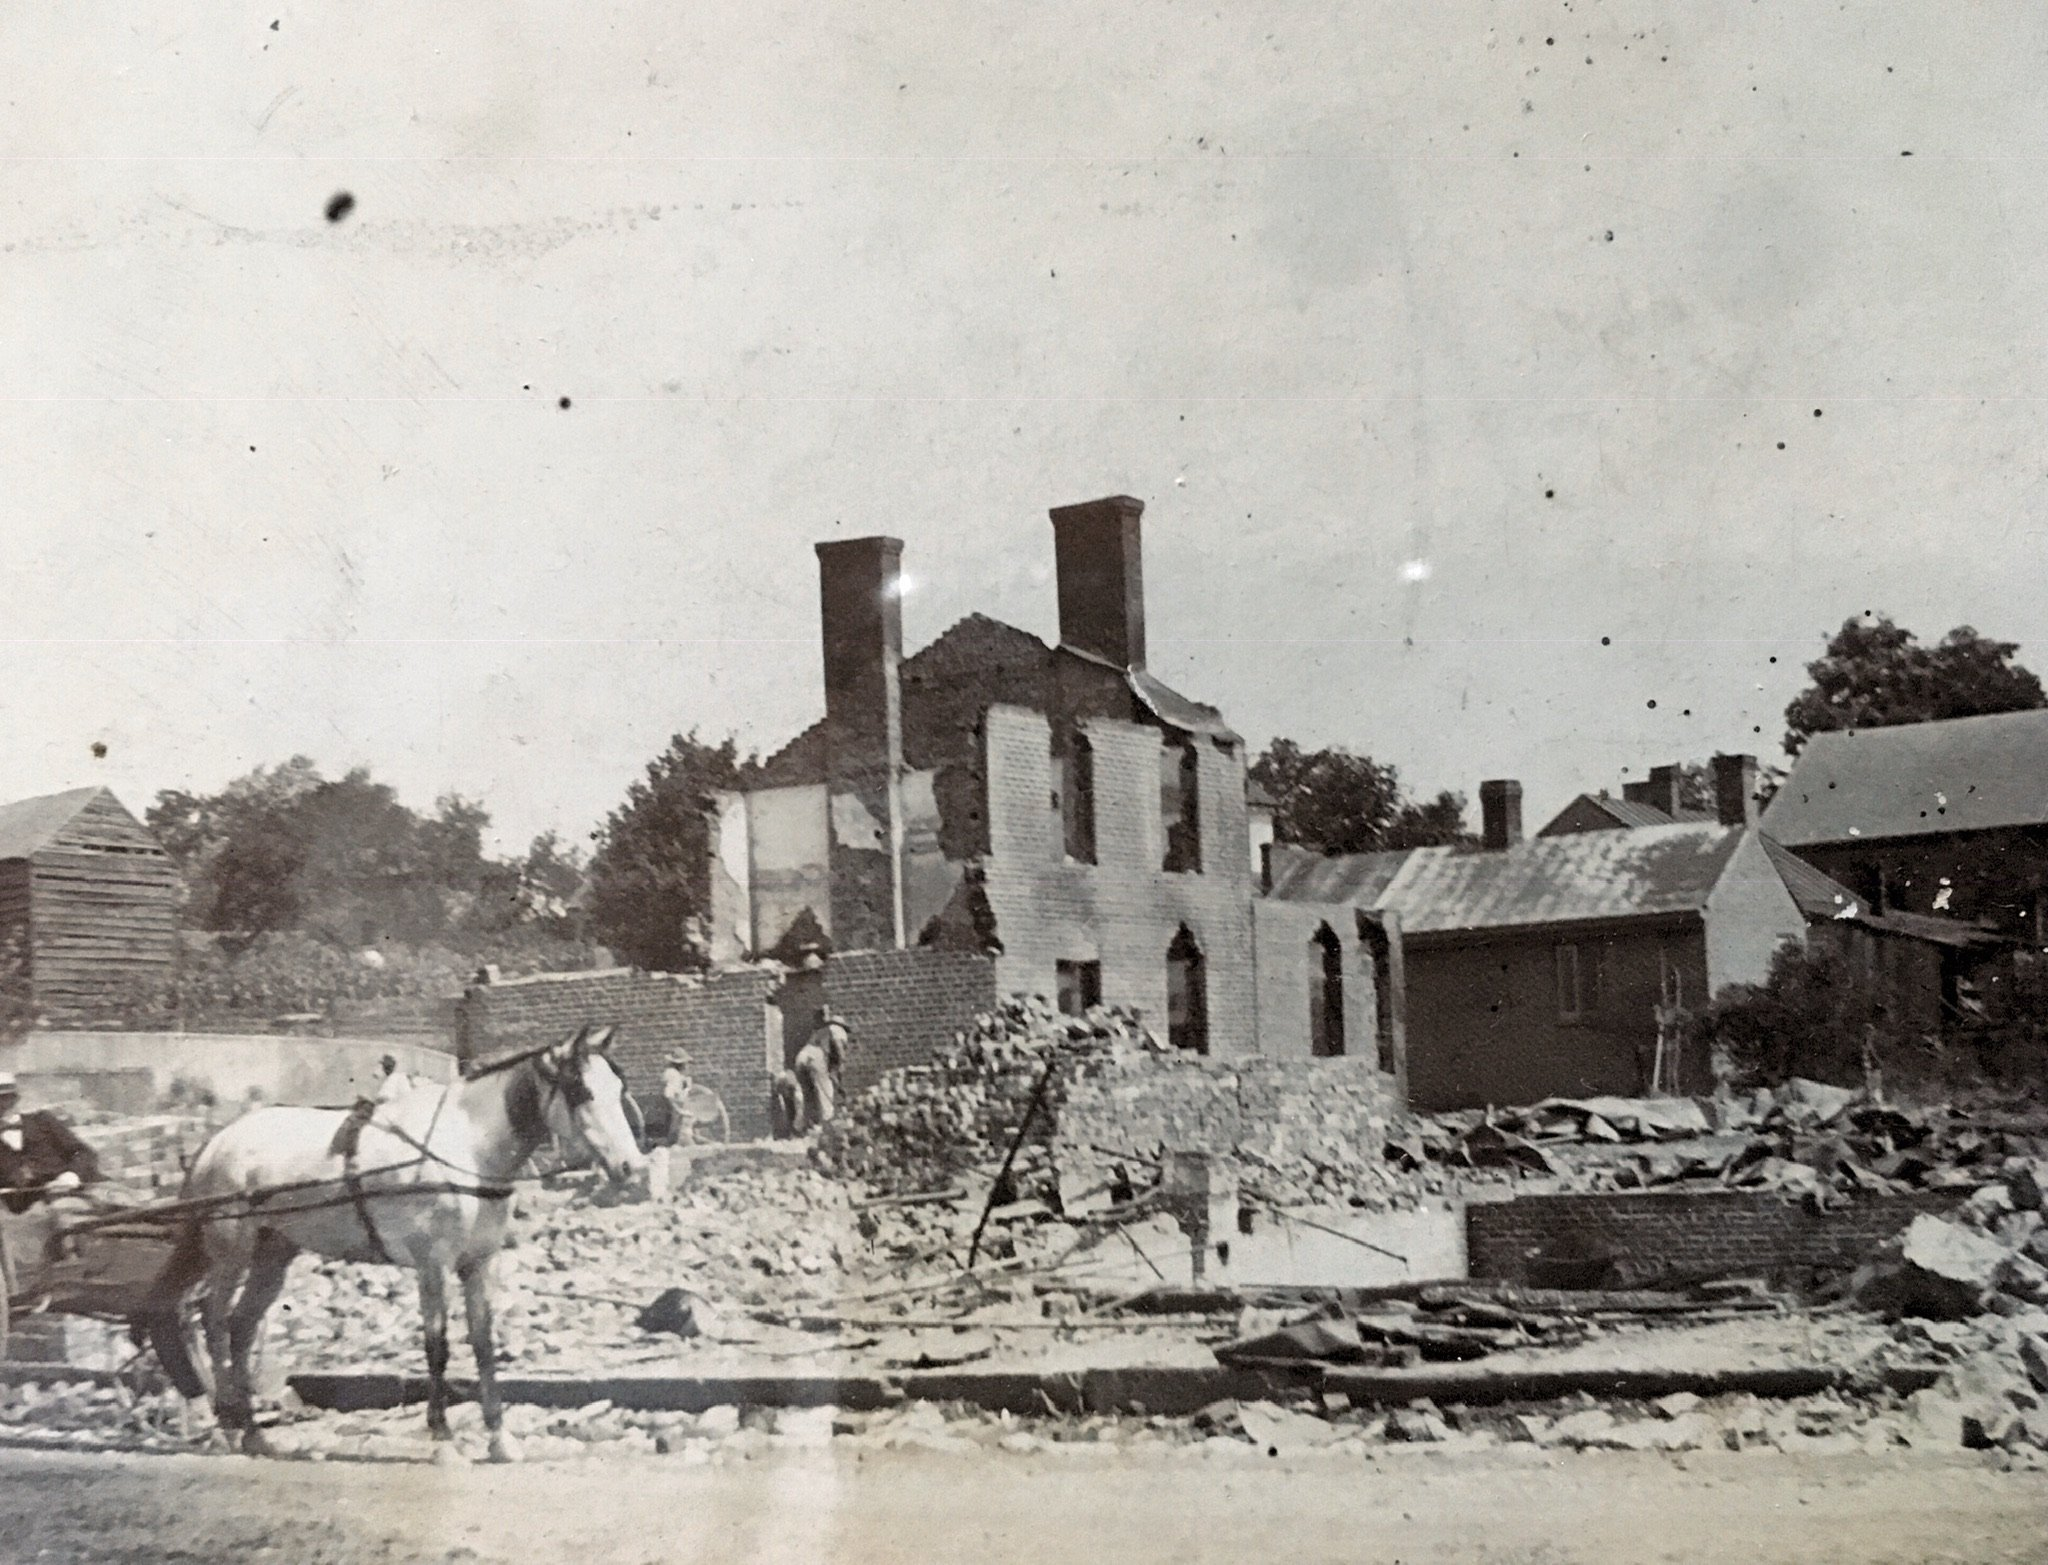 Aftermath of the fire of 1897. Photo courtesy of Judy Deegans.